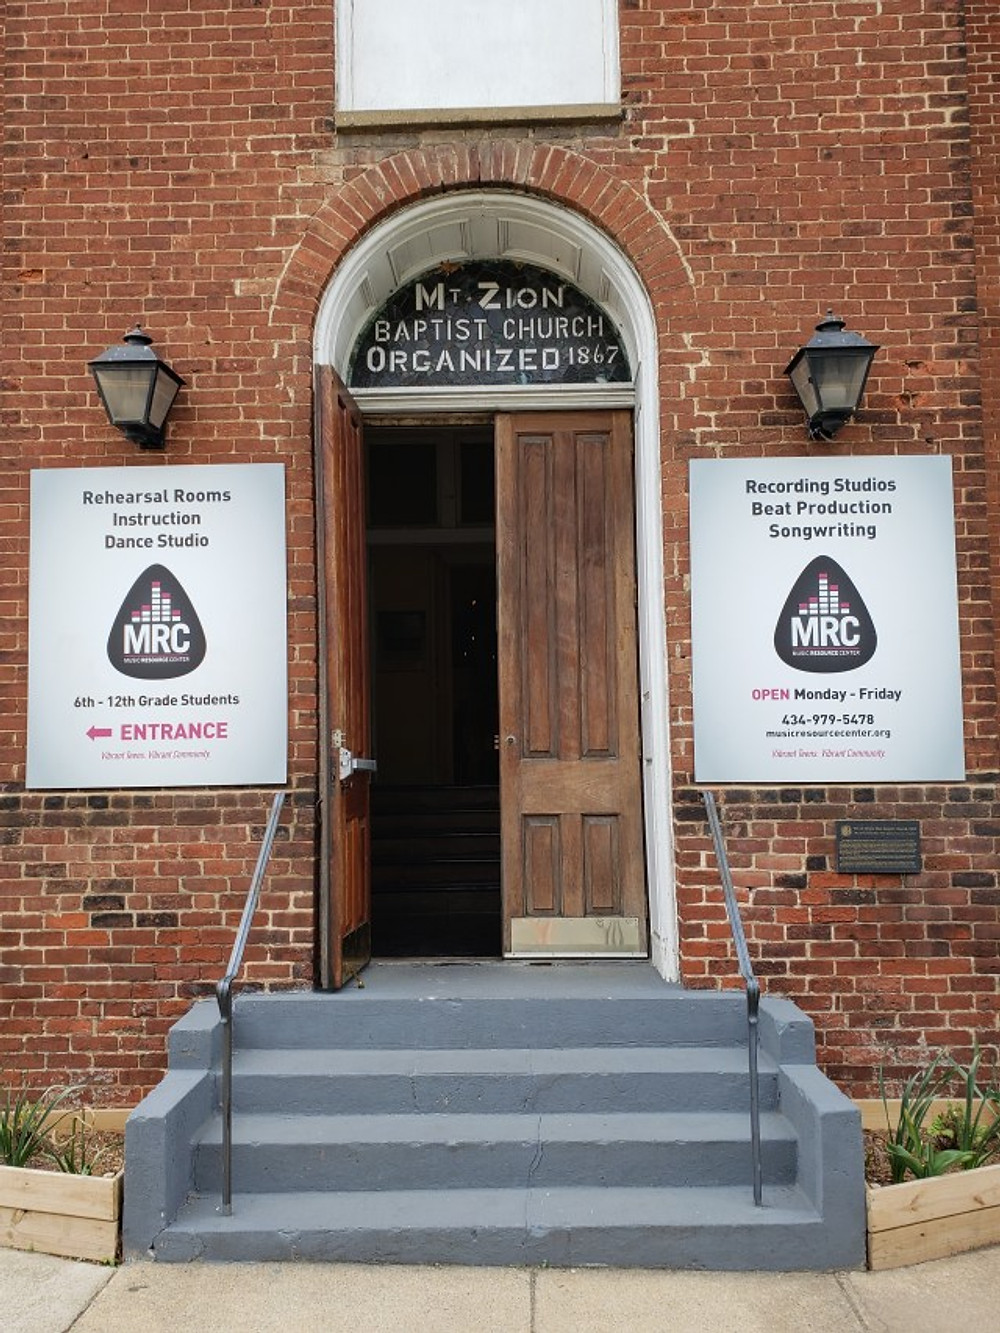 The entrance to the Music Resource Center in Charlottesville.